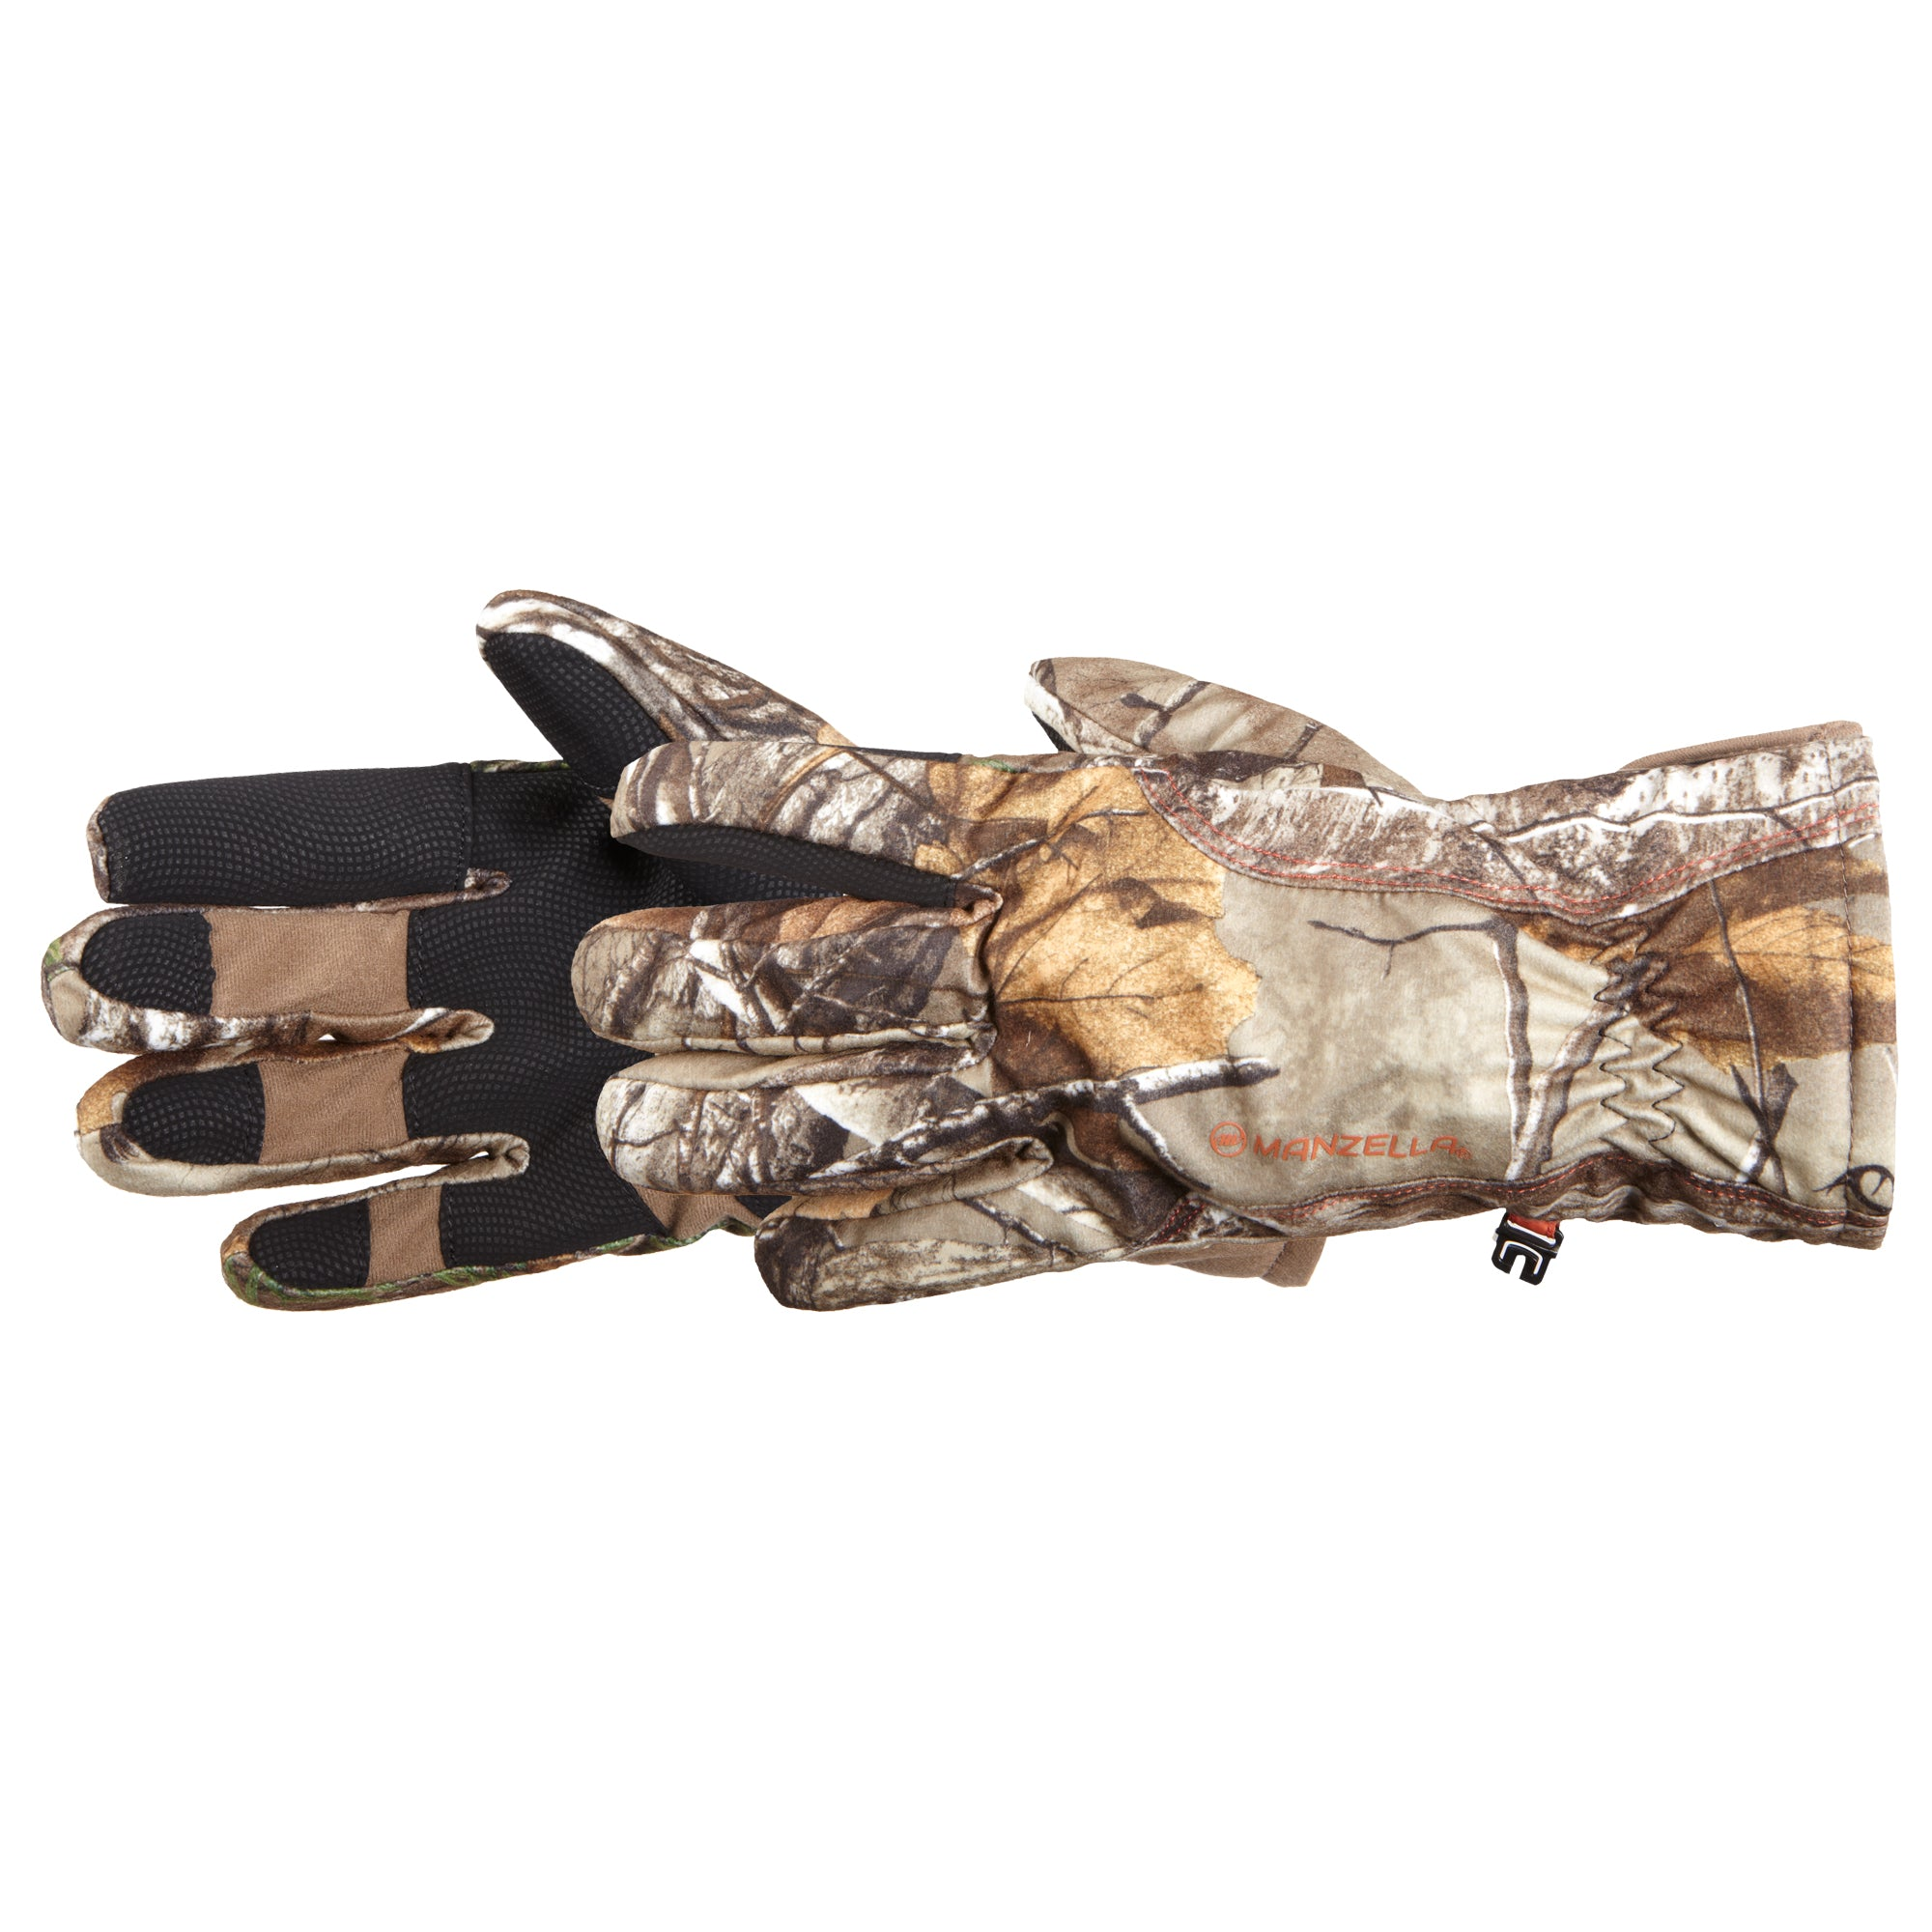 Manzella BOW SNIPER Hunting Gloves for Men